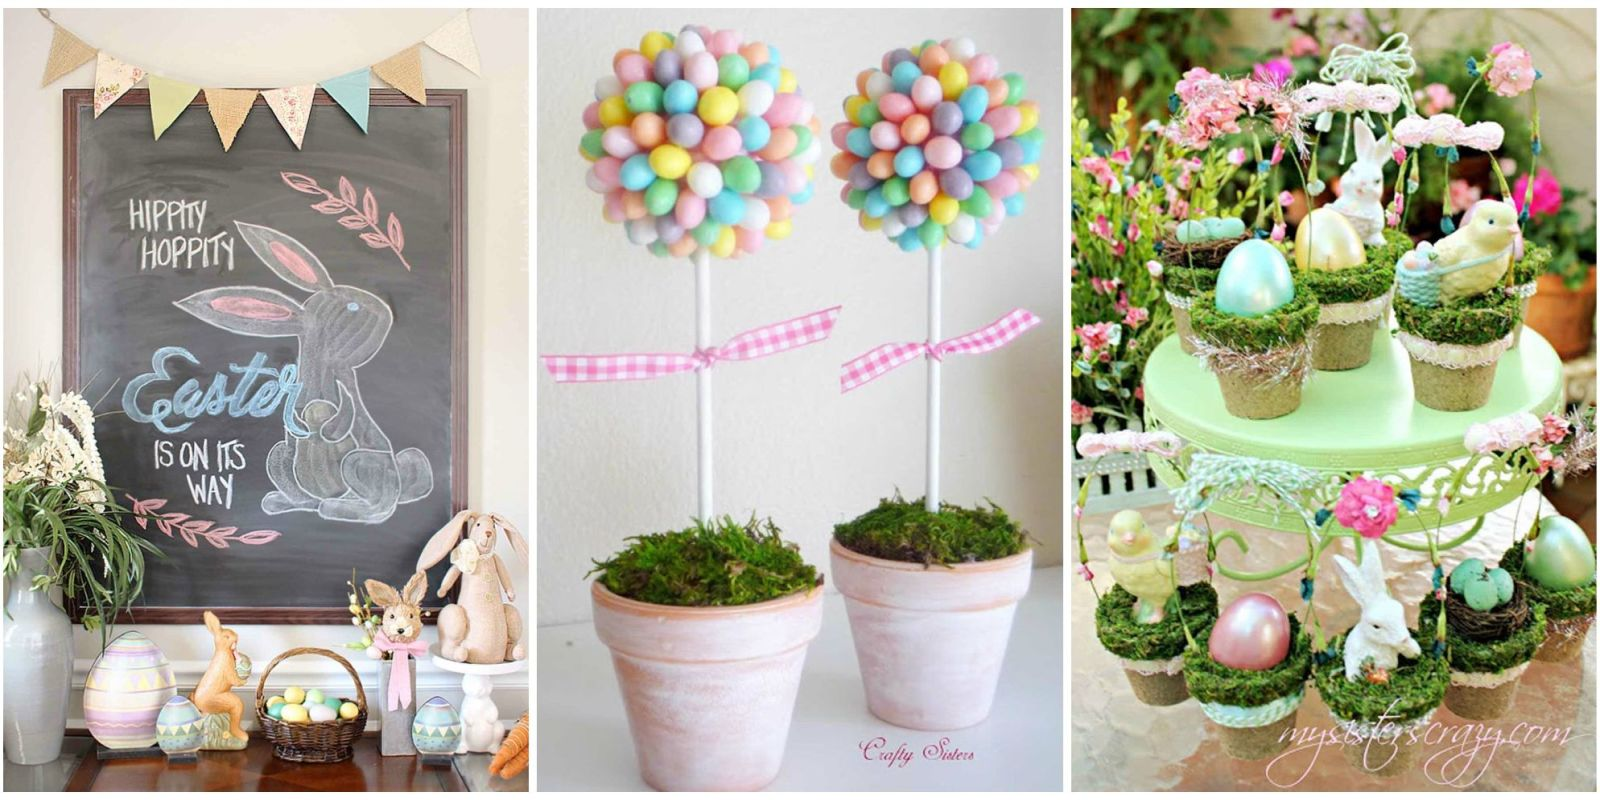 20 Diy Easter Decorations To Make Homemade Easter